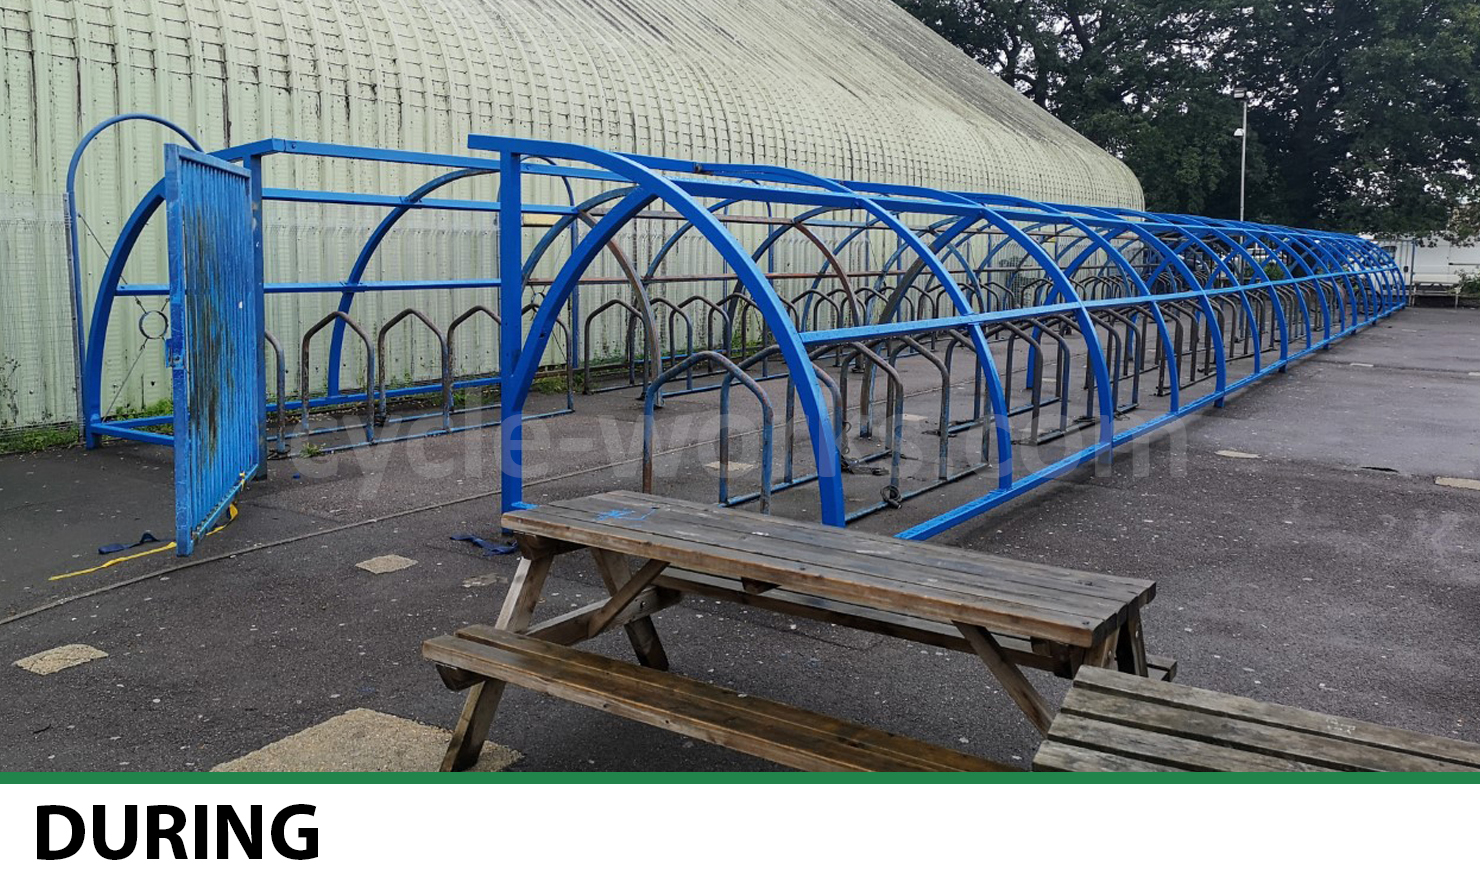 Bike Shelter Refurbishment During